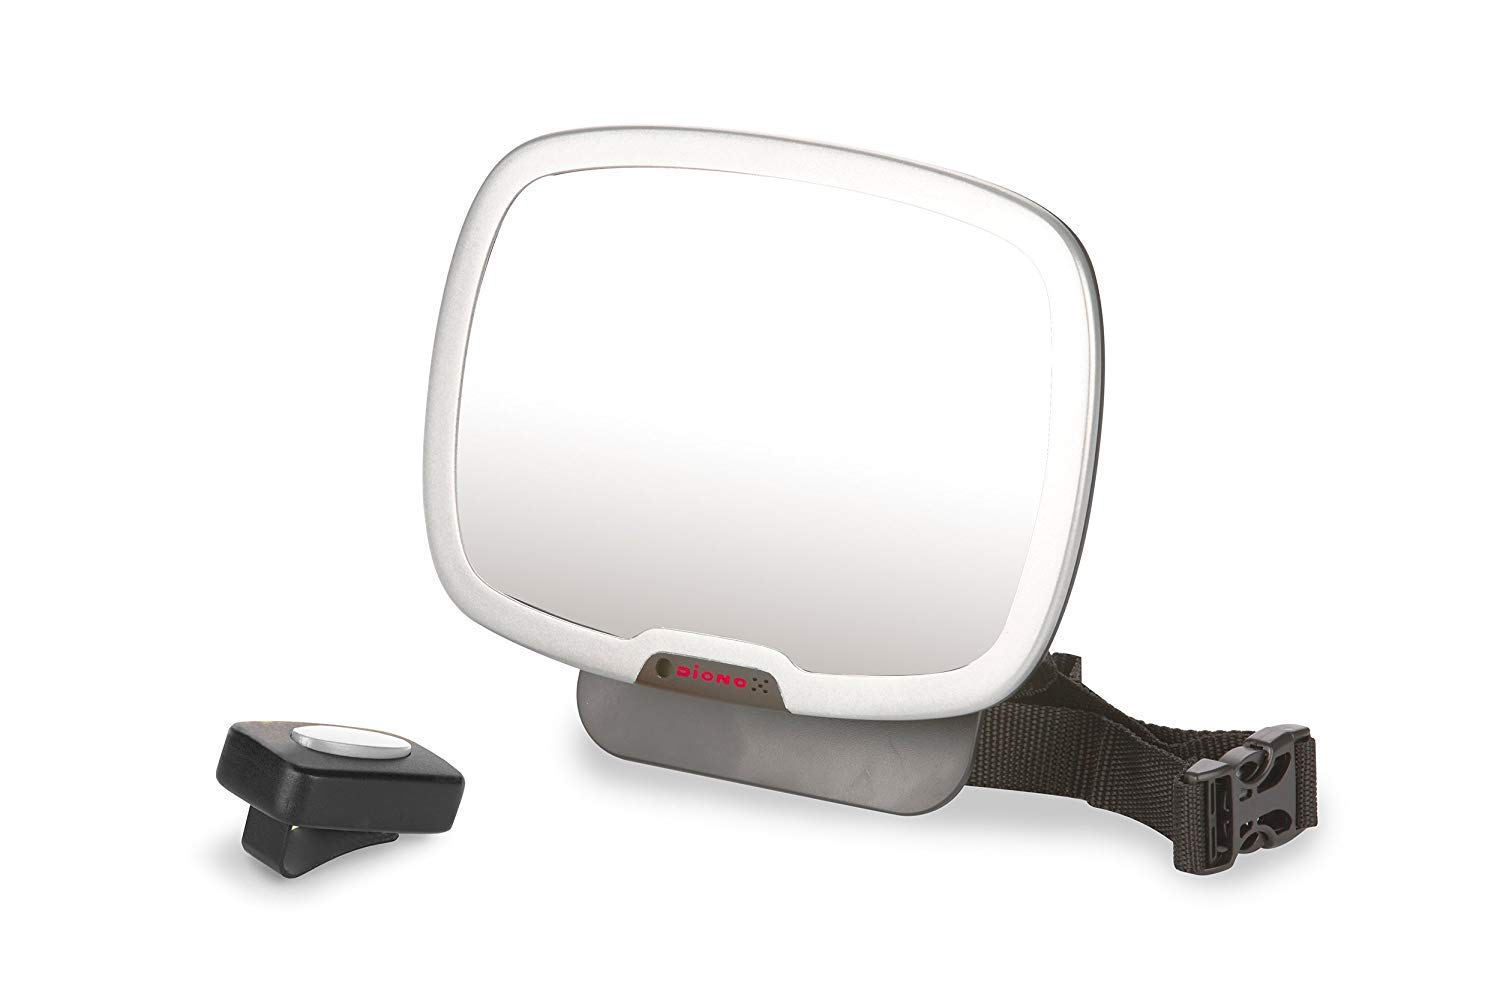 Diono Easy View Plus, Adjustable Back Seat Mirror with Remote-Controlled LED Light, Black and Silver